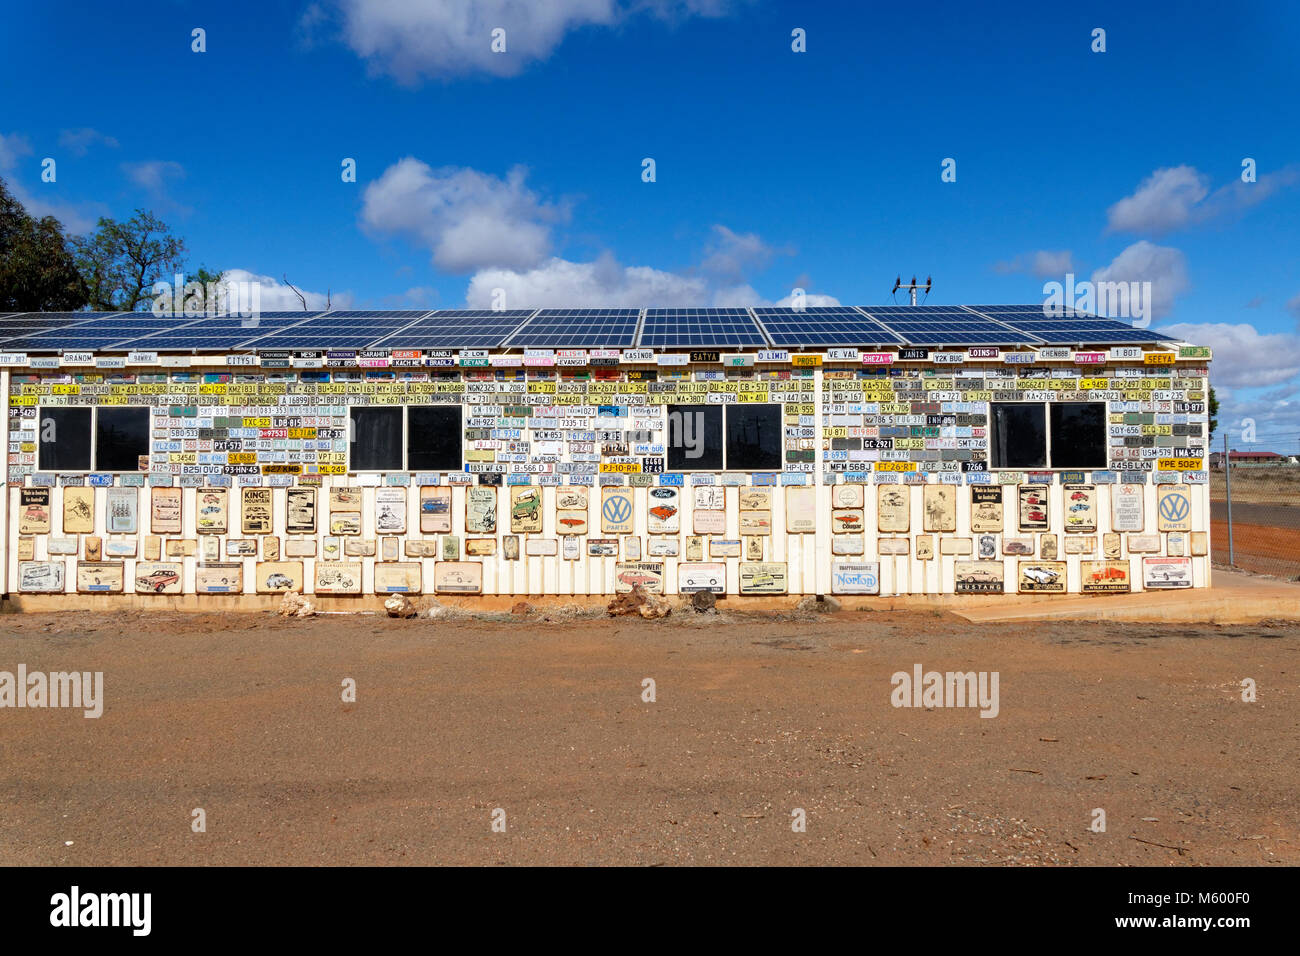 Wall covered in car number plates and Australian Memorabilia, Menzies, Murchison, Western Australia - Stock Image